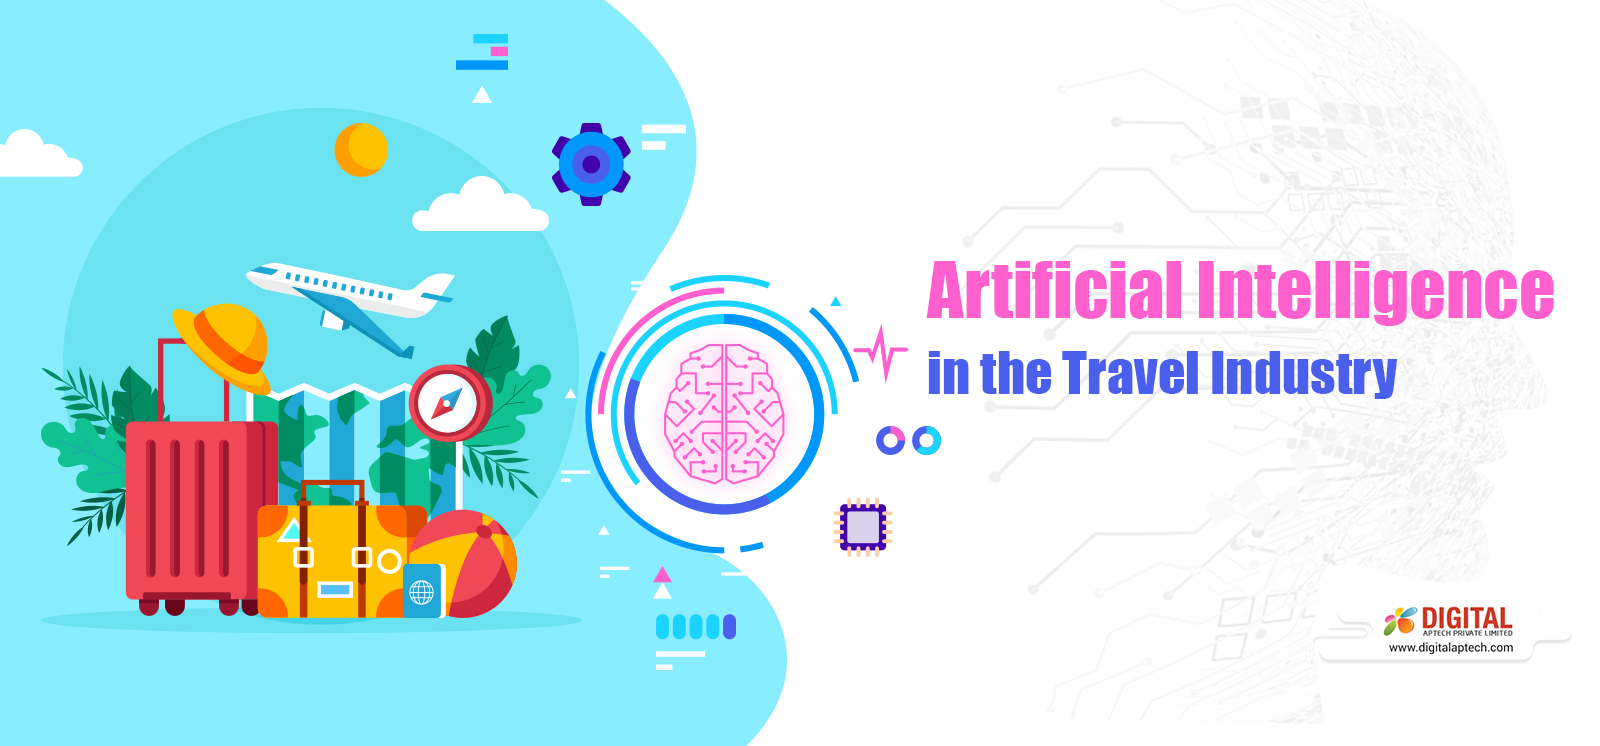 How Can Artificial Intelligence Transform the Travel Industry?